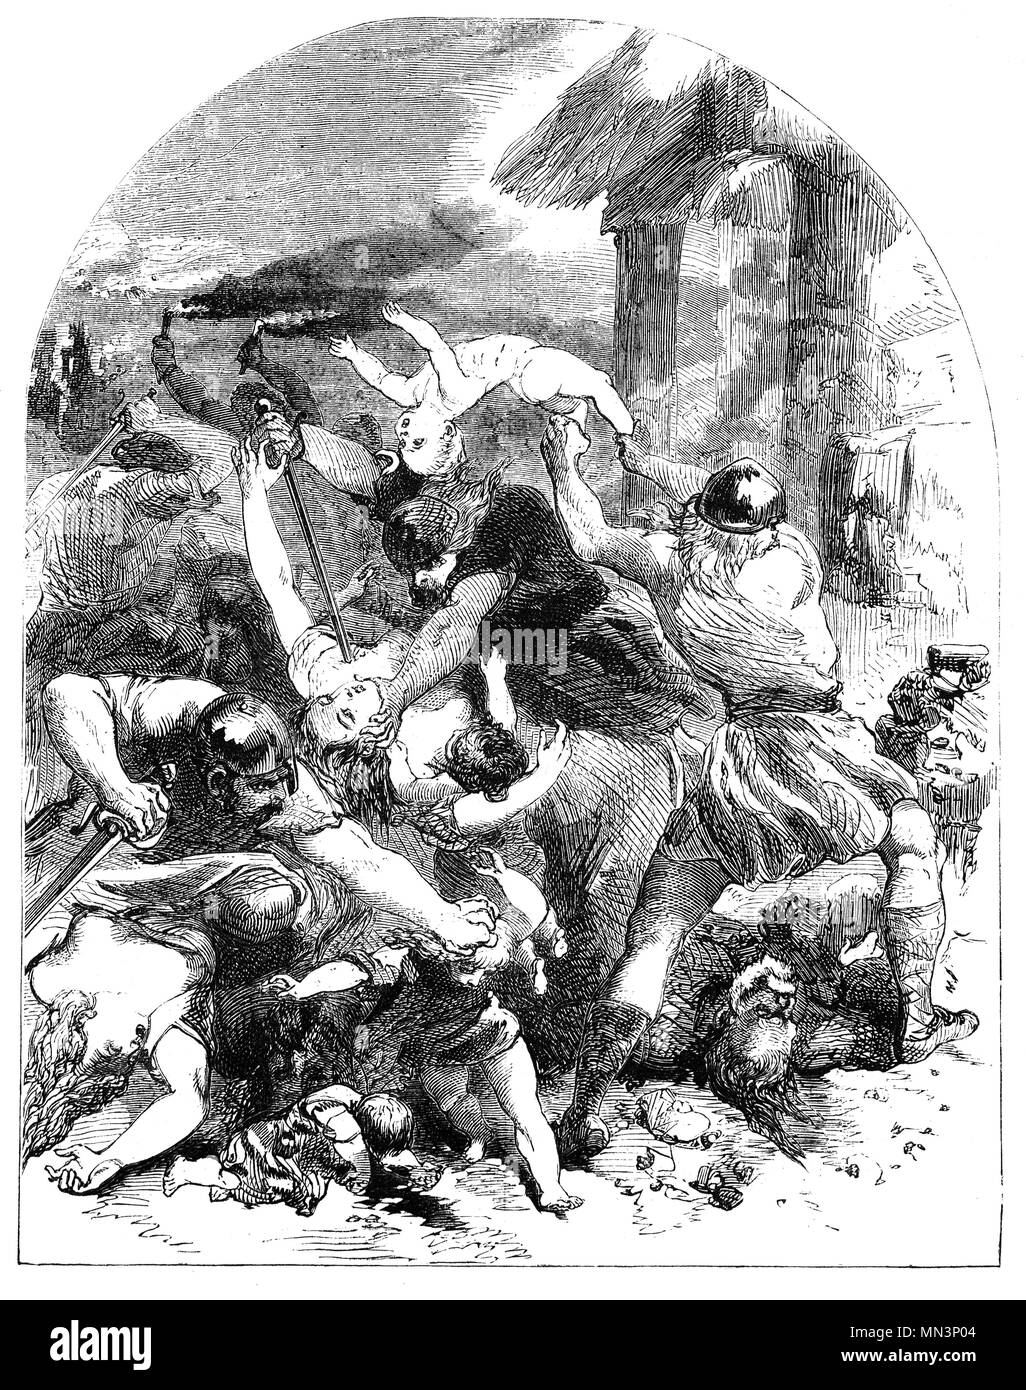 The St. Brice's Day massacre of England's Danish inhabitants ordered by Aethelred the Unready in November 1002, during which King Sweyn's sister and brother-in-law are said to have been killed.  Sweyn Forkbeard ((960 – 1014) was king of Denmark during 986–1014. He was the father of King Harald II of Denmark, King Cnut the Great and Queen Estrid Svendsdatter.  In 1000 Sweyn ruled most of Norway. In 1013, shortly before his death, he became the first Danish king of England after a long effort. - Stock Image